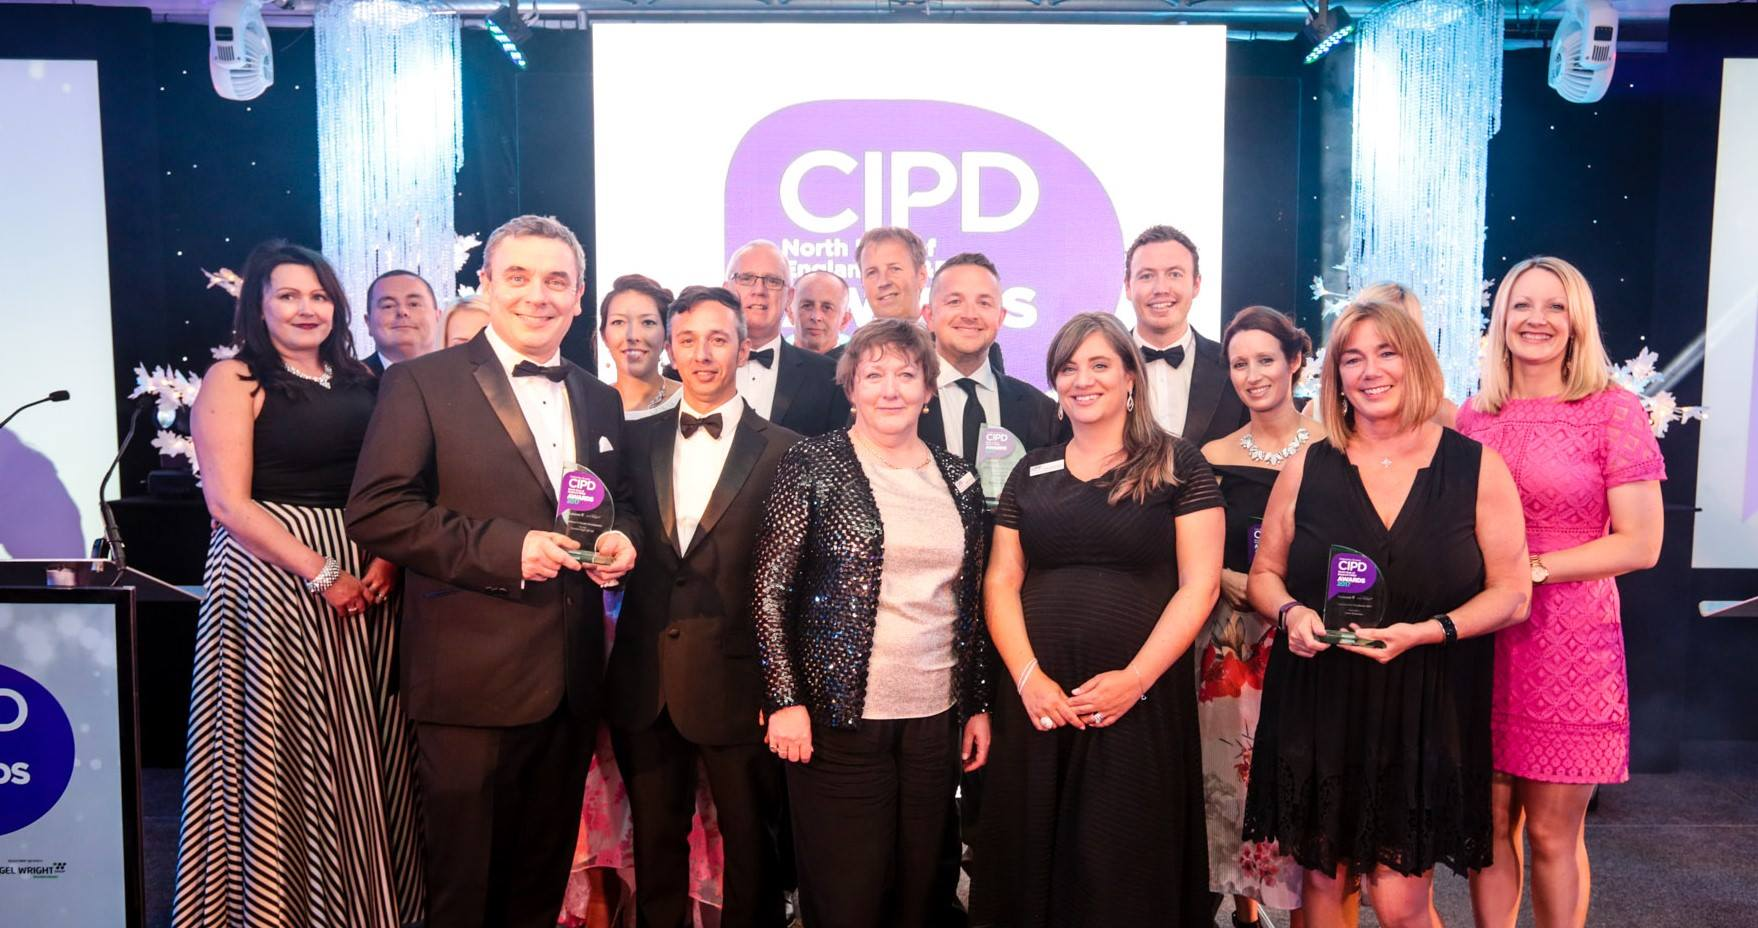 CIPD North East Awards 2017